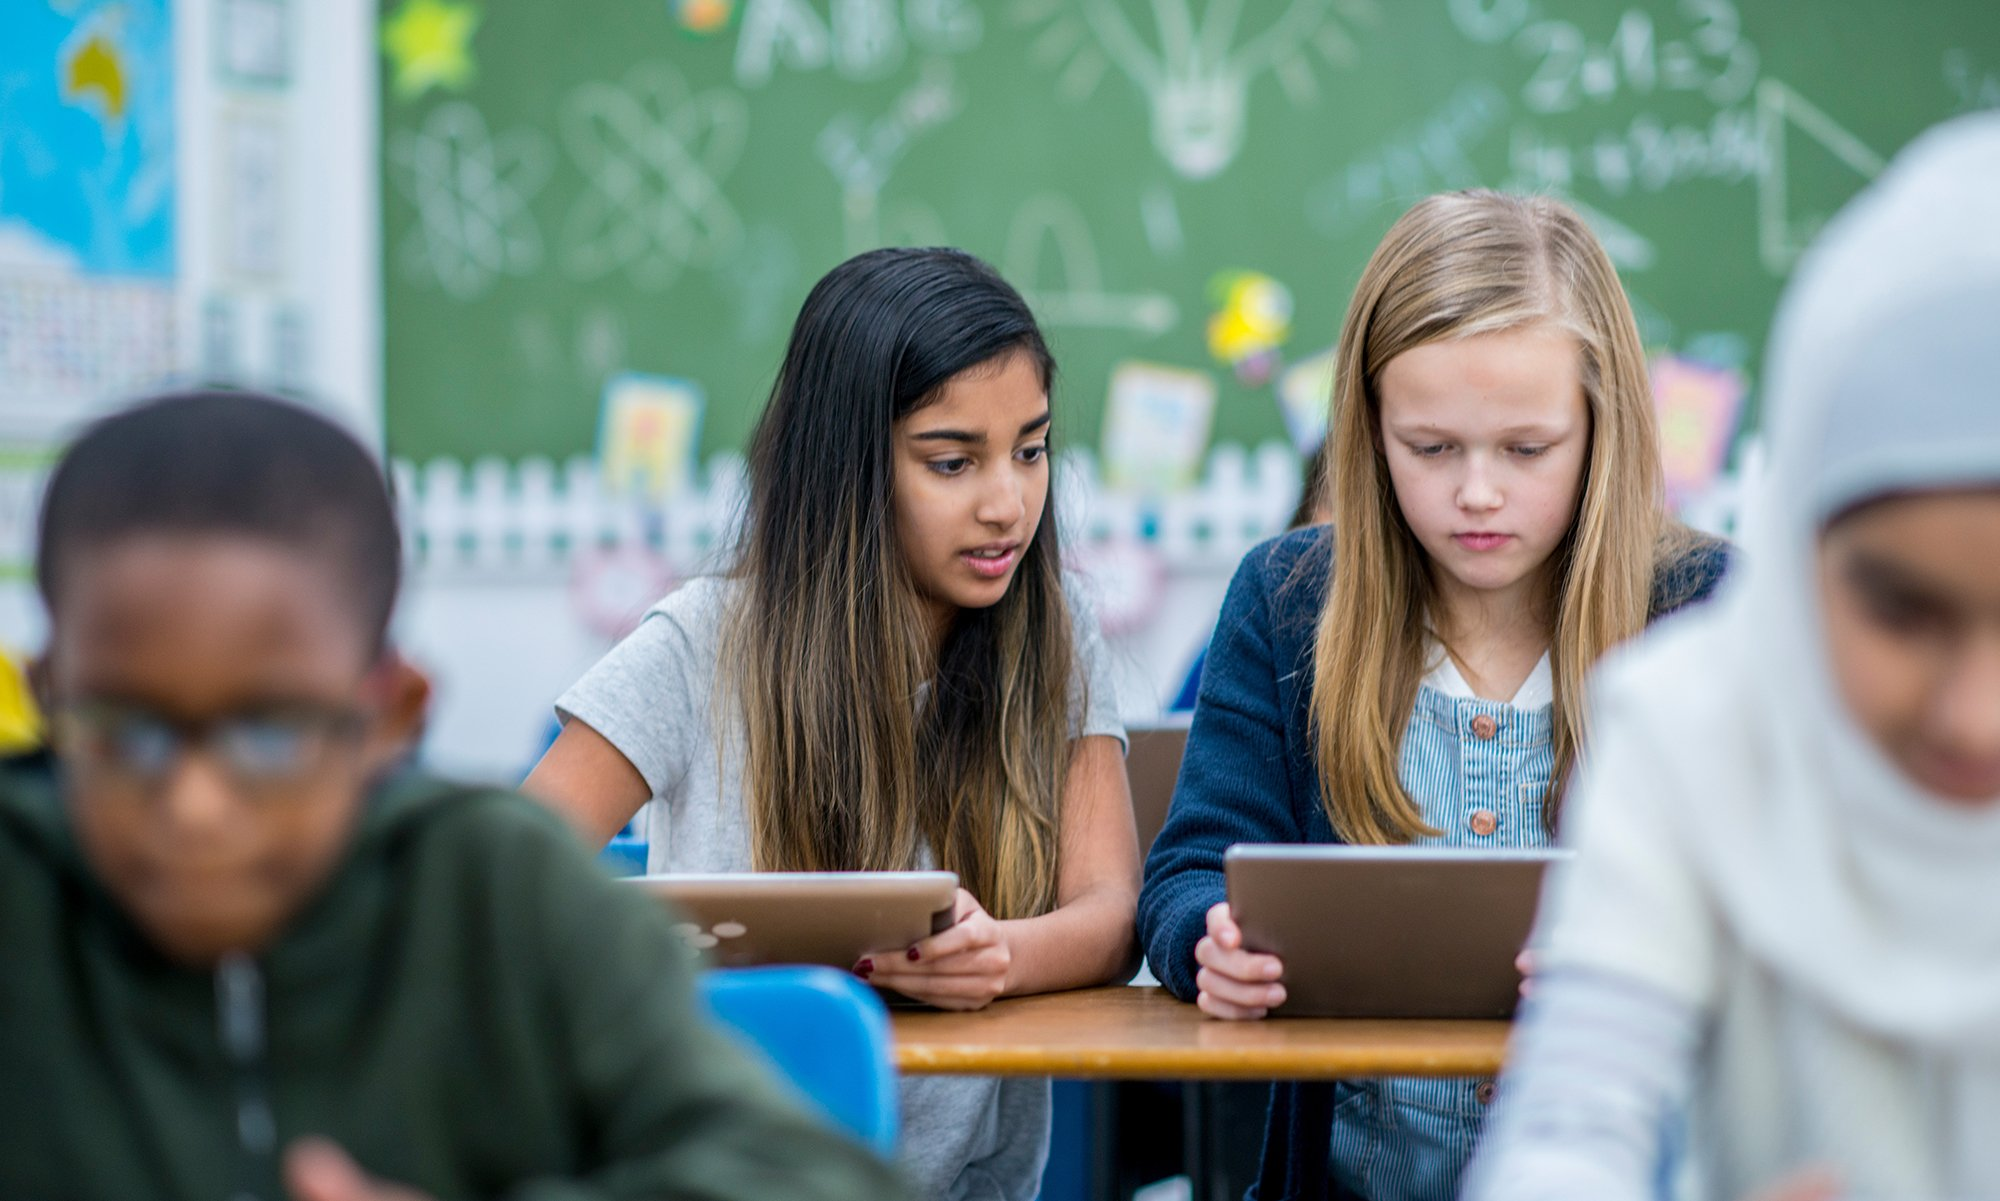 Educational Design and Technology: Equipping Educators to Lead the Classrooms of Tomorrow